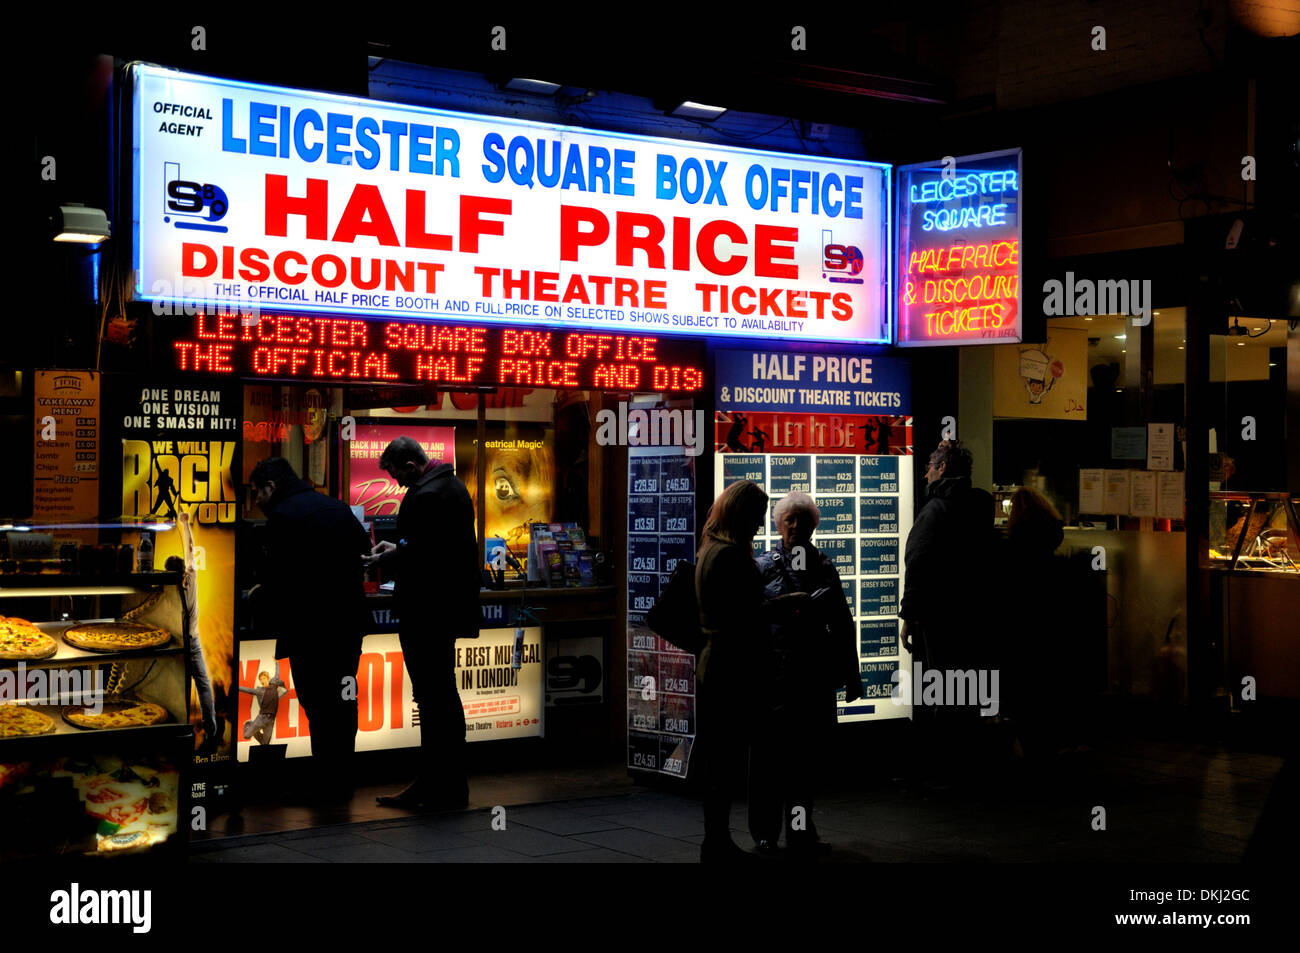 London, England, UK. Leicester Square box office - half price theatre tickets - at night - Stock Image